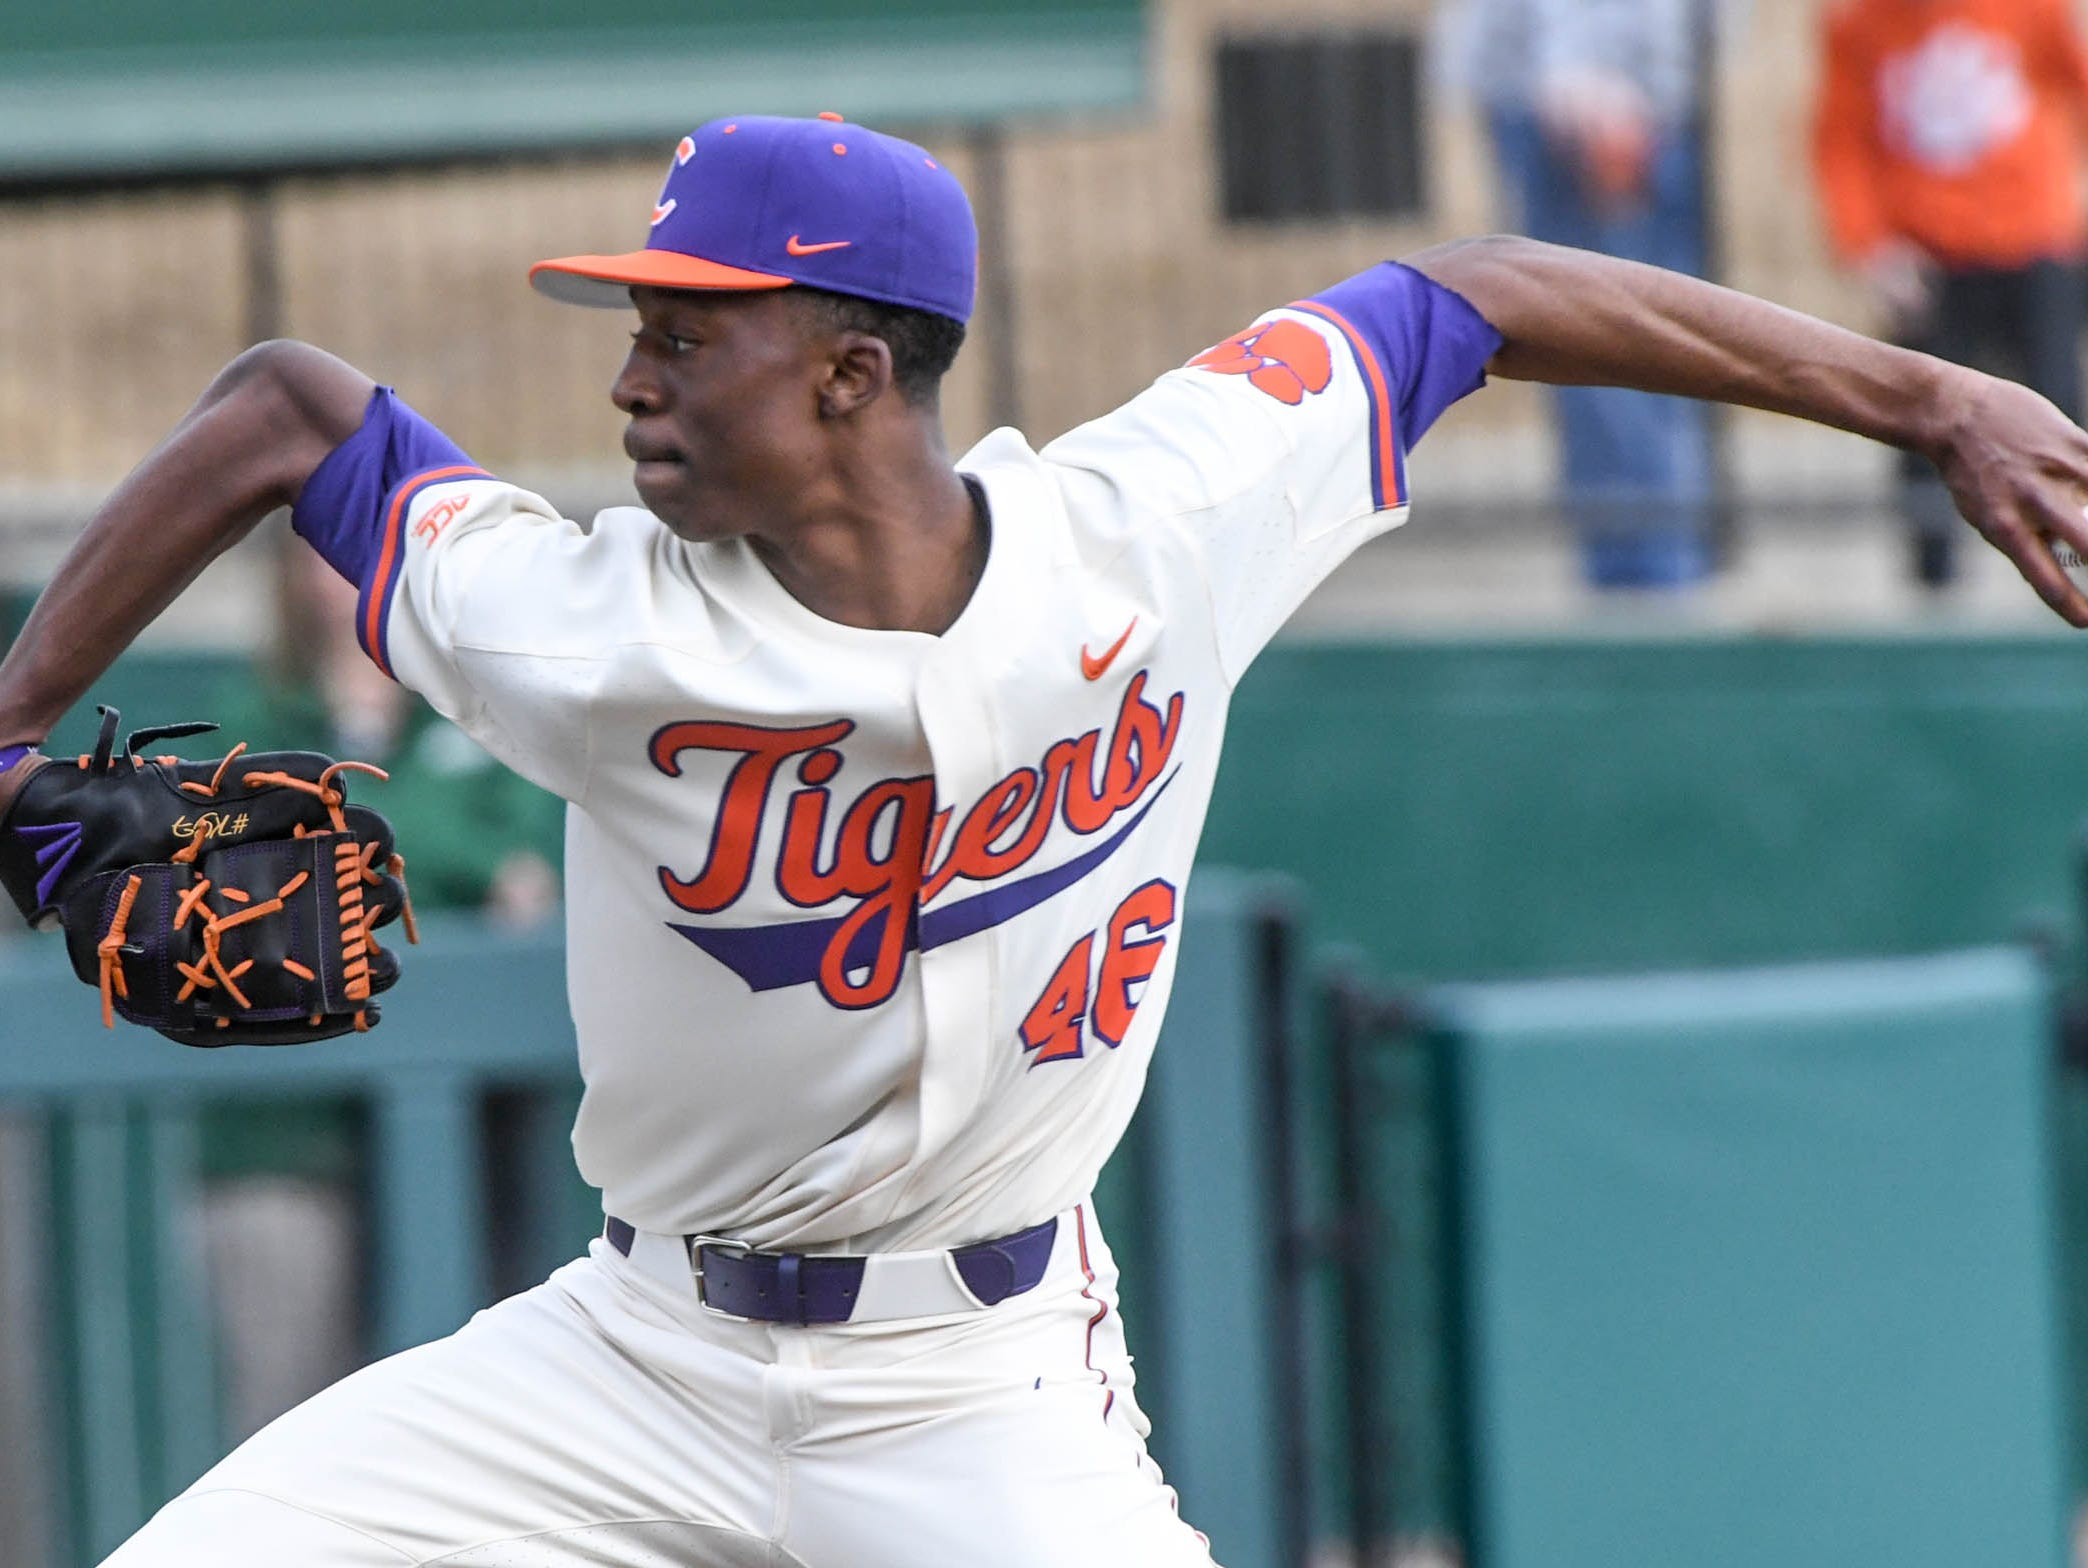 Clemson freshman Keyshawn Askew(46) warms up before the game with Charlotte at Doug Kingsmore Stadium in Clemson Monday, February 18, 2019.